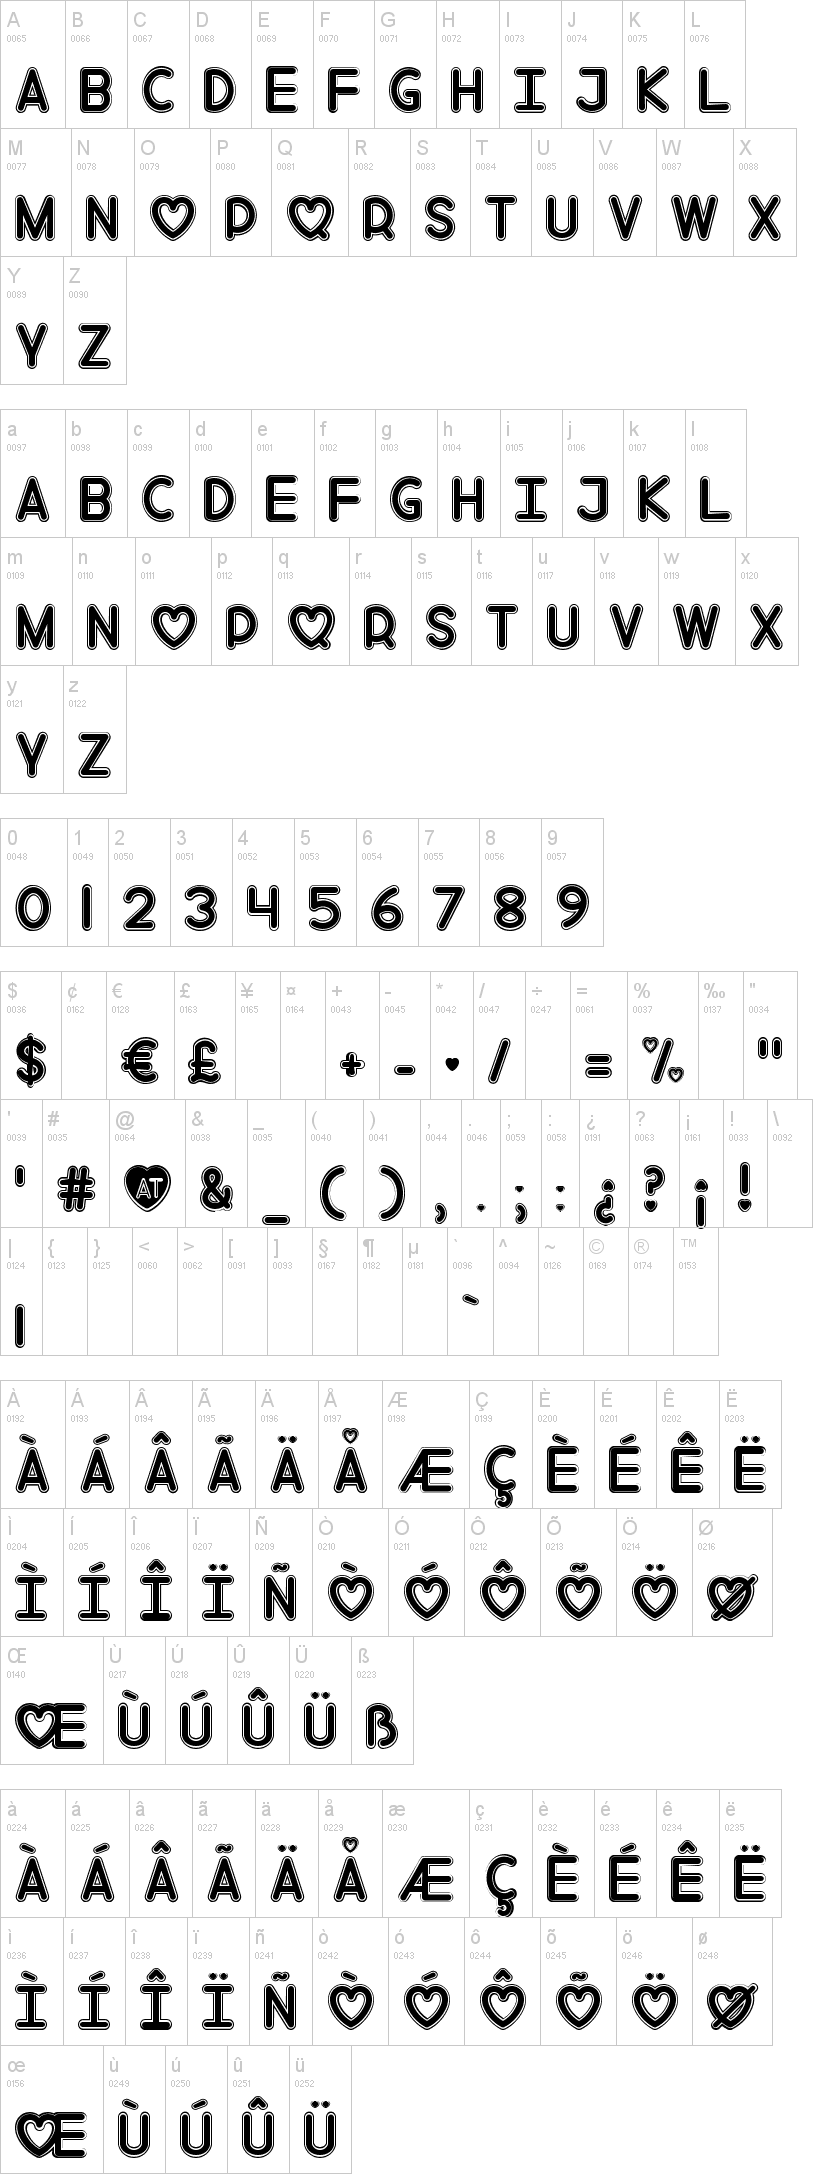 Mf Love Song Font-1